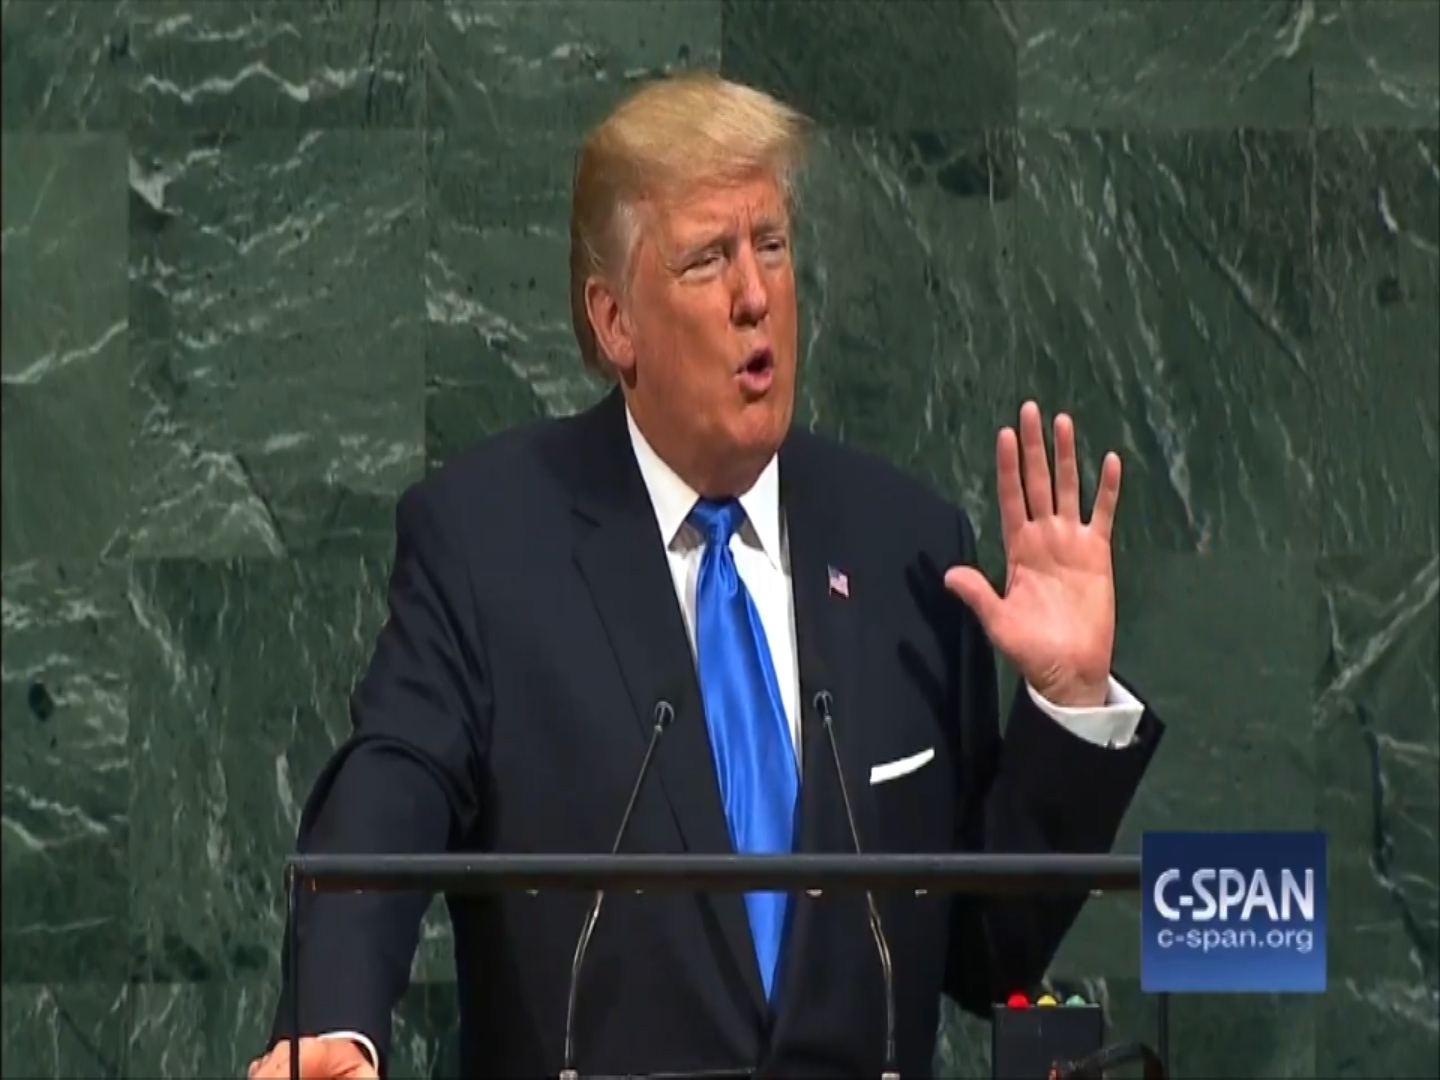 President Trump threatens to 'totally destroy' North Korea in UN speech